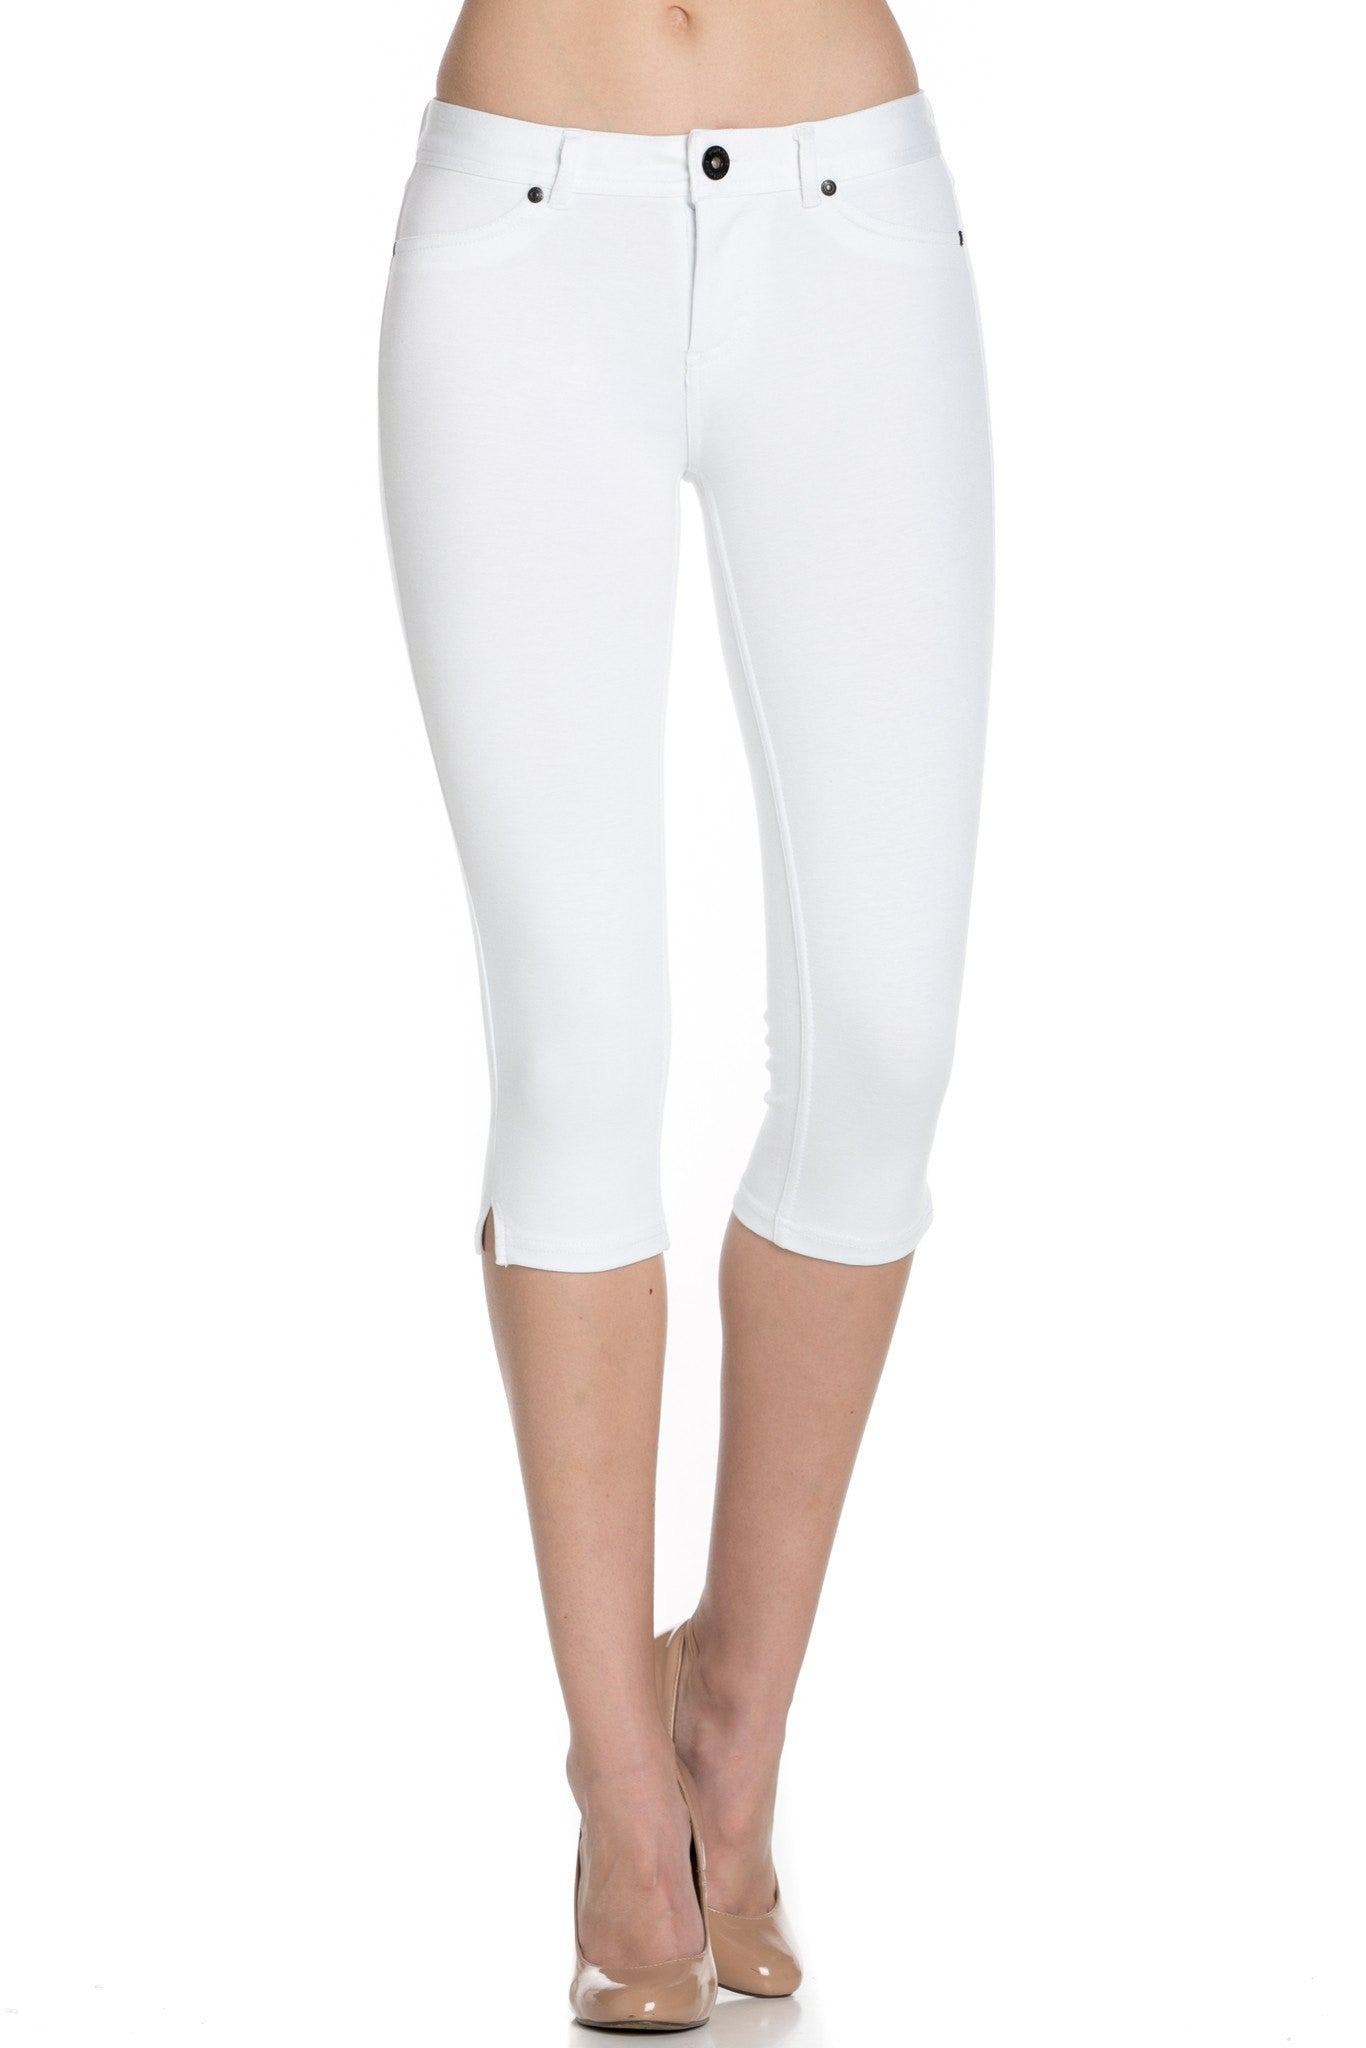 4 Way Stretchy Ponte Knit Capri Skinny Jeans (White) - Poplooks